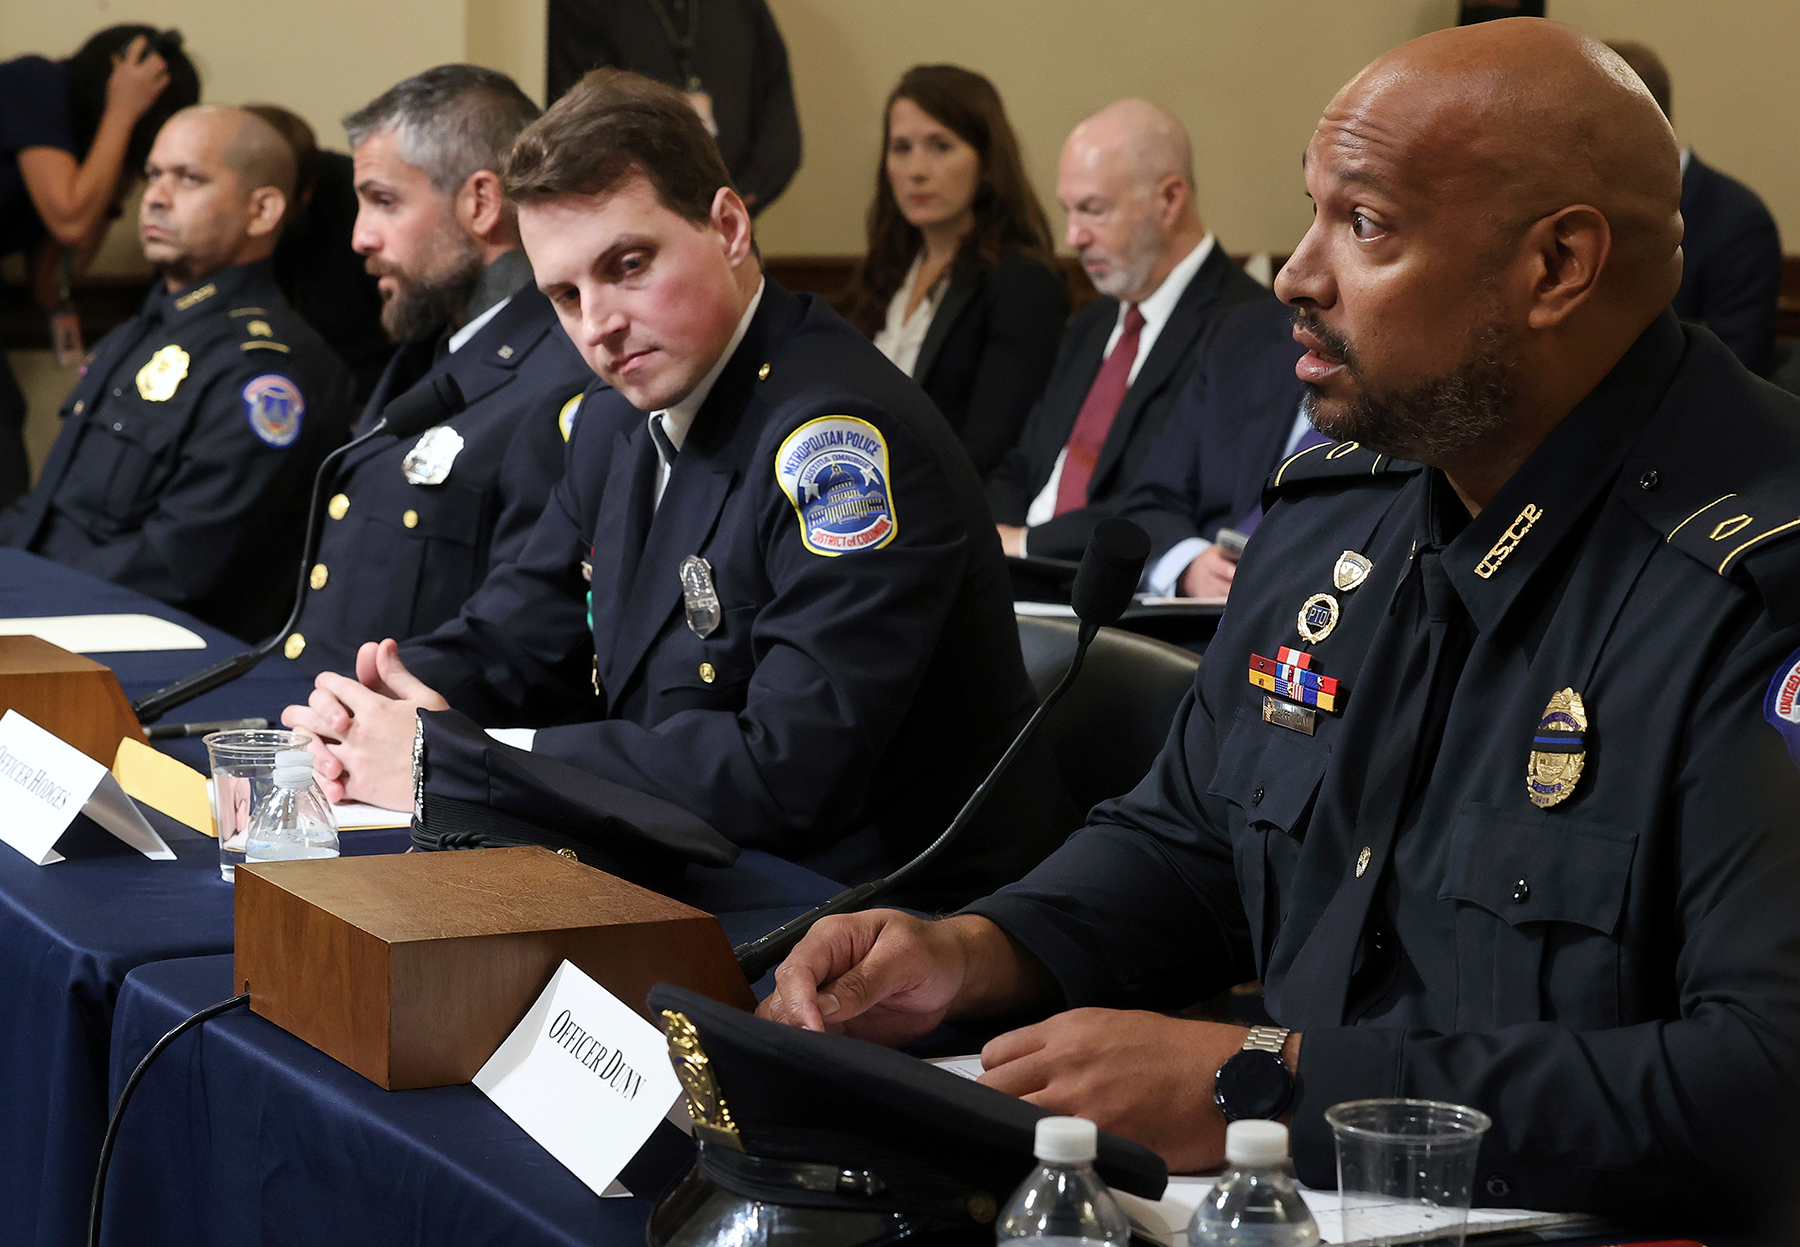 U.S. Capitol Police Sgt. Aquilino Gonell, from left, Washington Metropolitan Police Department officer Michael Fanone, Washington Metropolitan Police Department officer Daniel Hodges and U.S. Capitol Police Sgt. Harry Dunn testify before the House select committee hearing on the Jan. 6 attack on Capitol Hill in Washington, Tuesday, July 27, 2021. (Chip Somodevilla/Pool via AP)